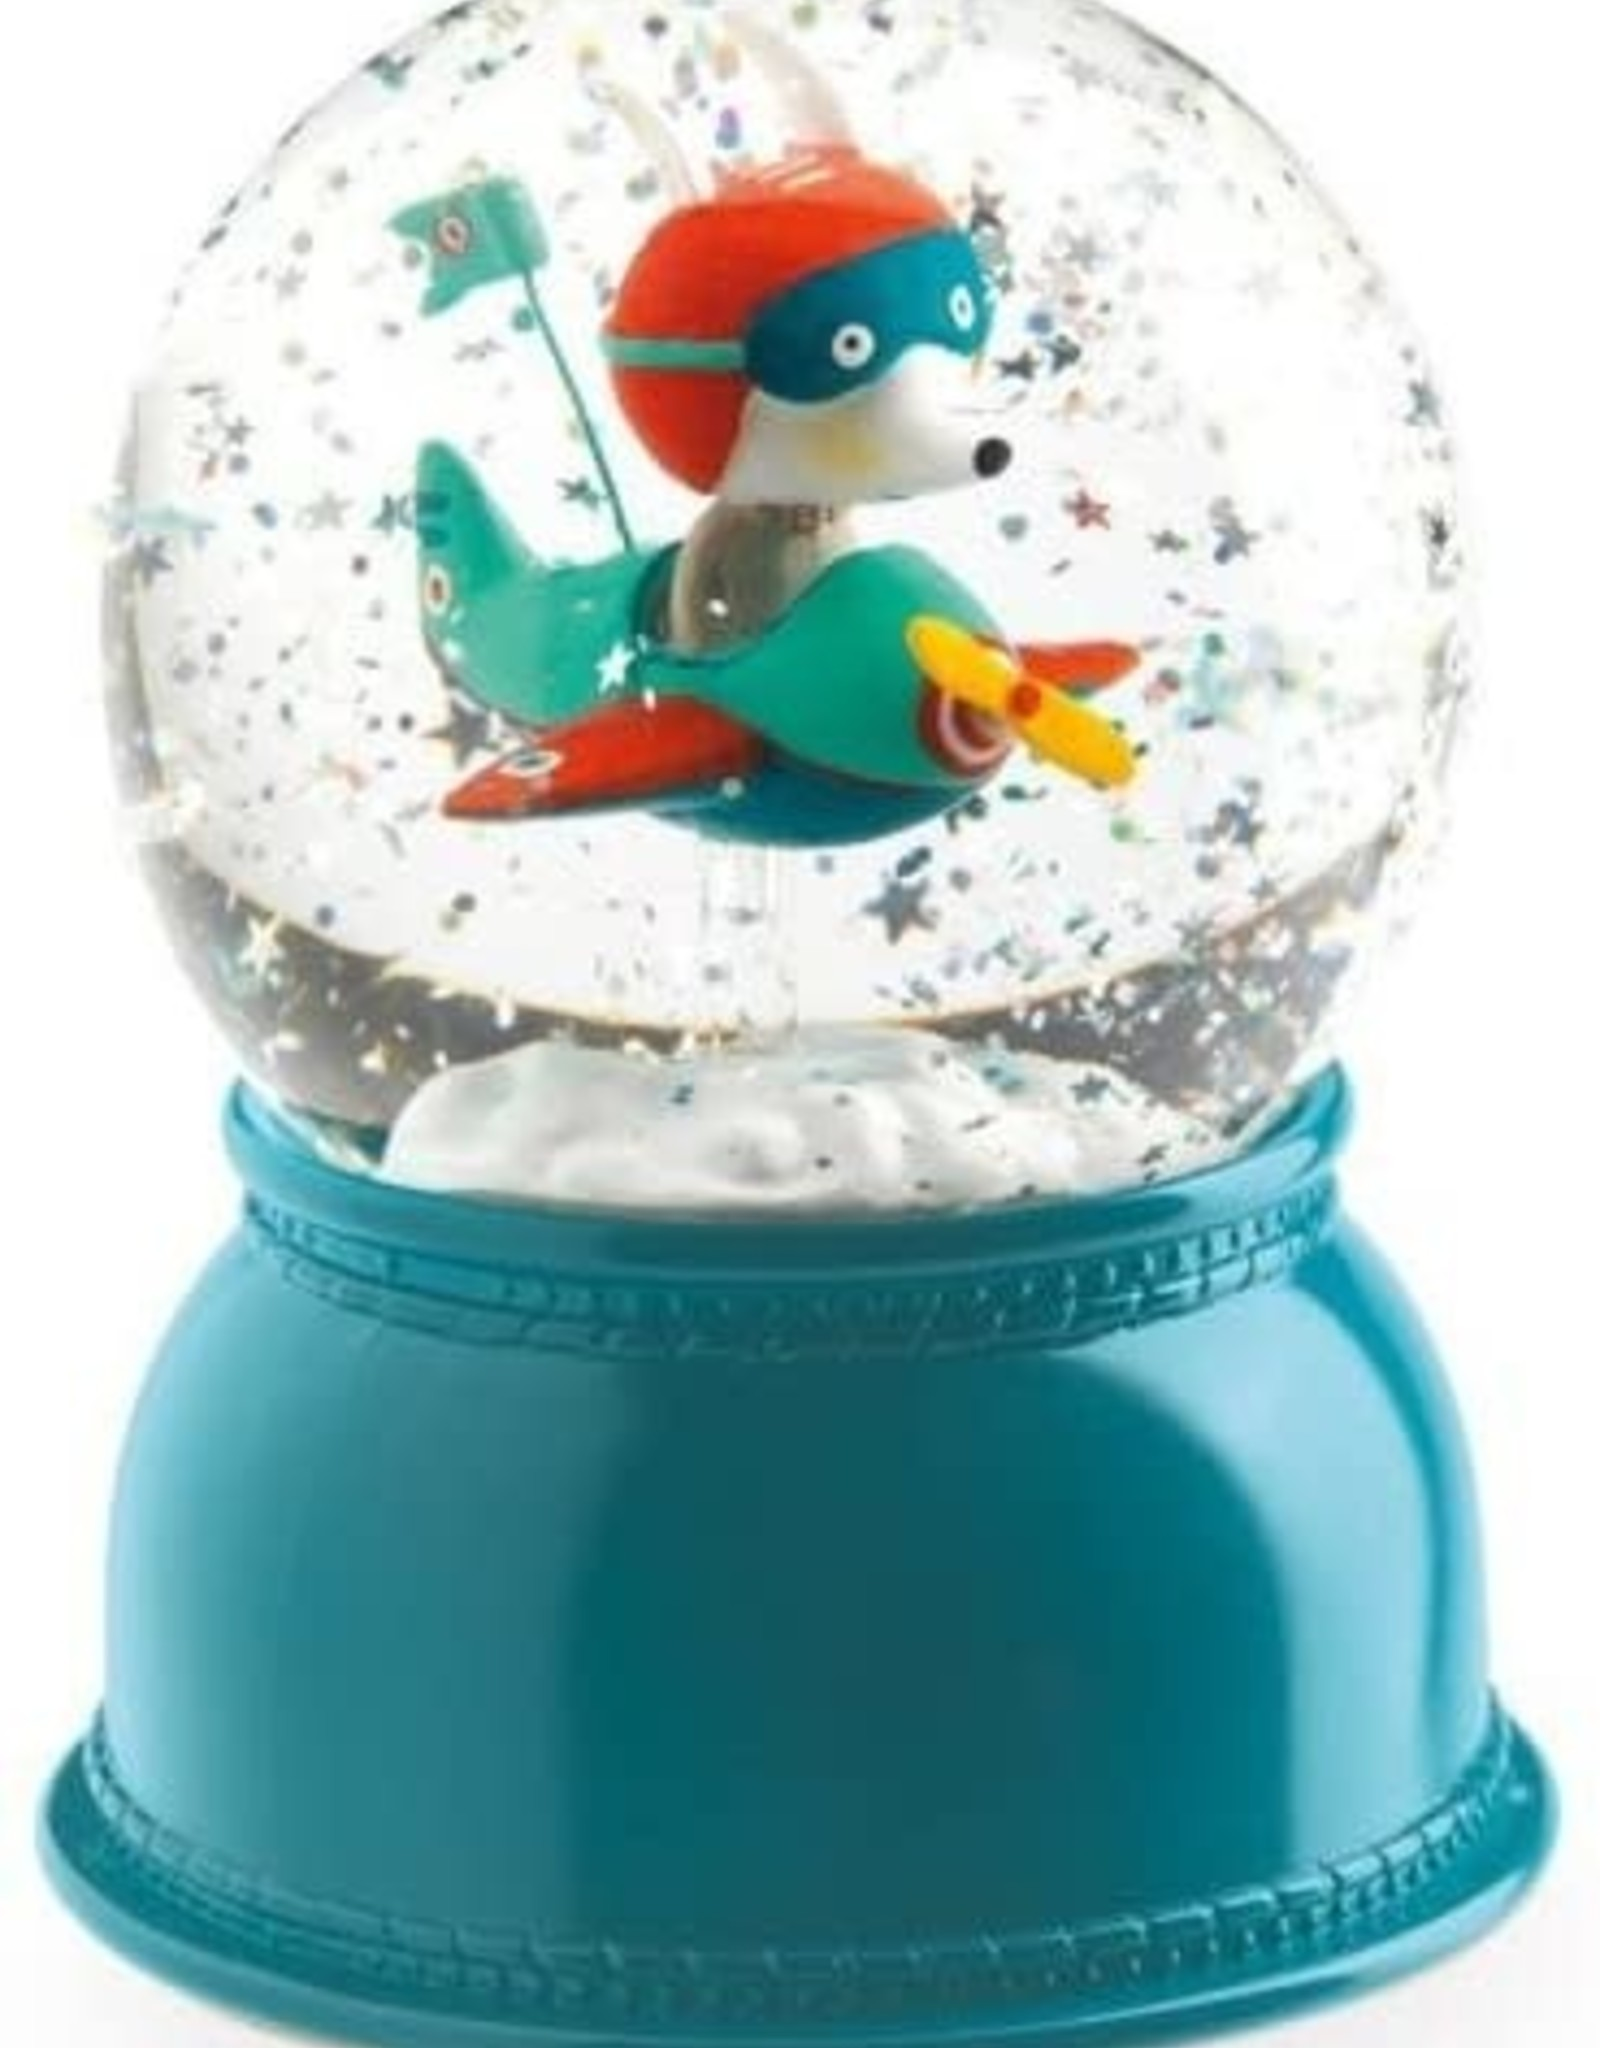 Djeco Snowglobe Nightlights Airplane